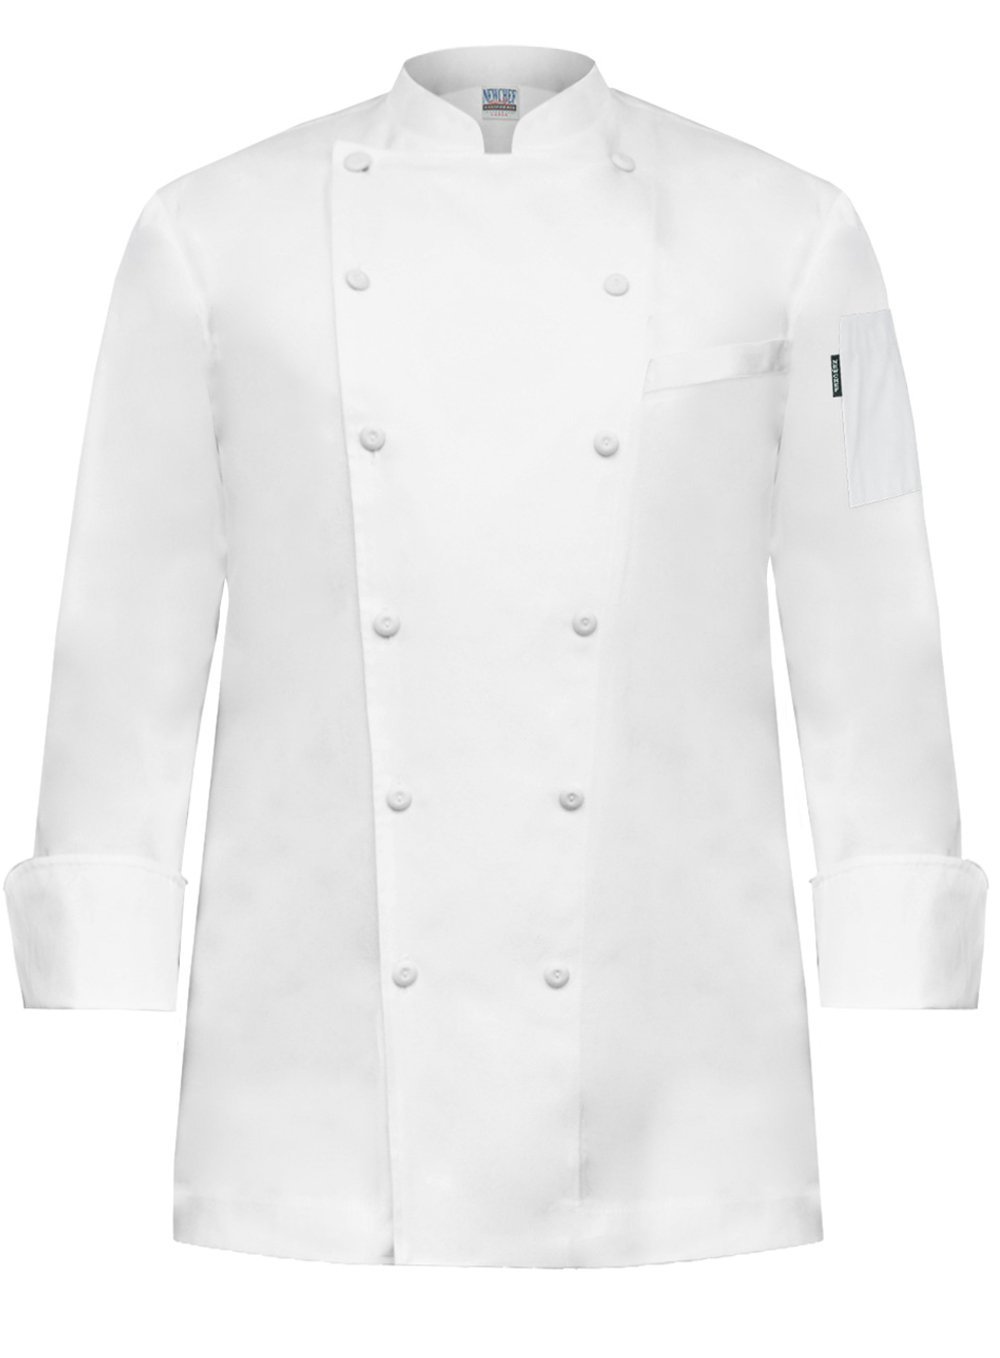 Newchef Fashion Prince White Egyptian Cotton Men Chef Coat Breast Pocket 2XL White by Newchef Fashion